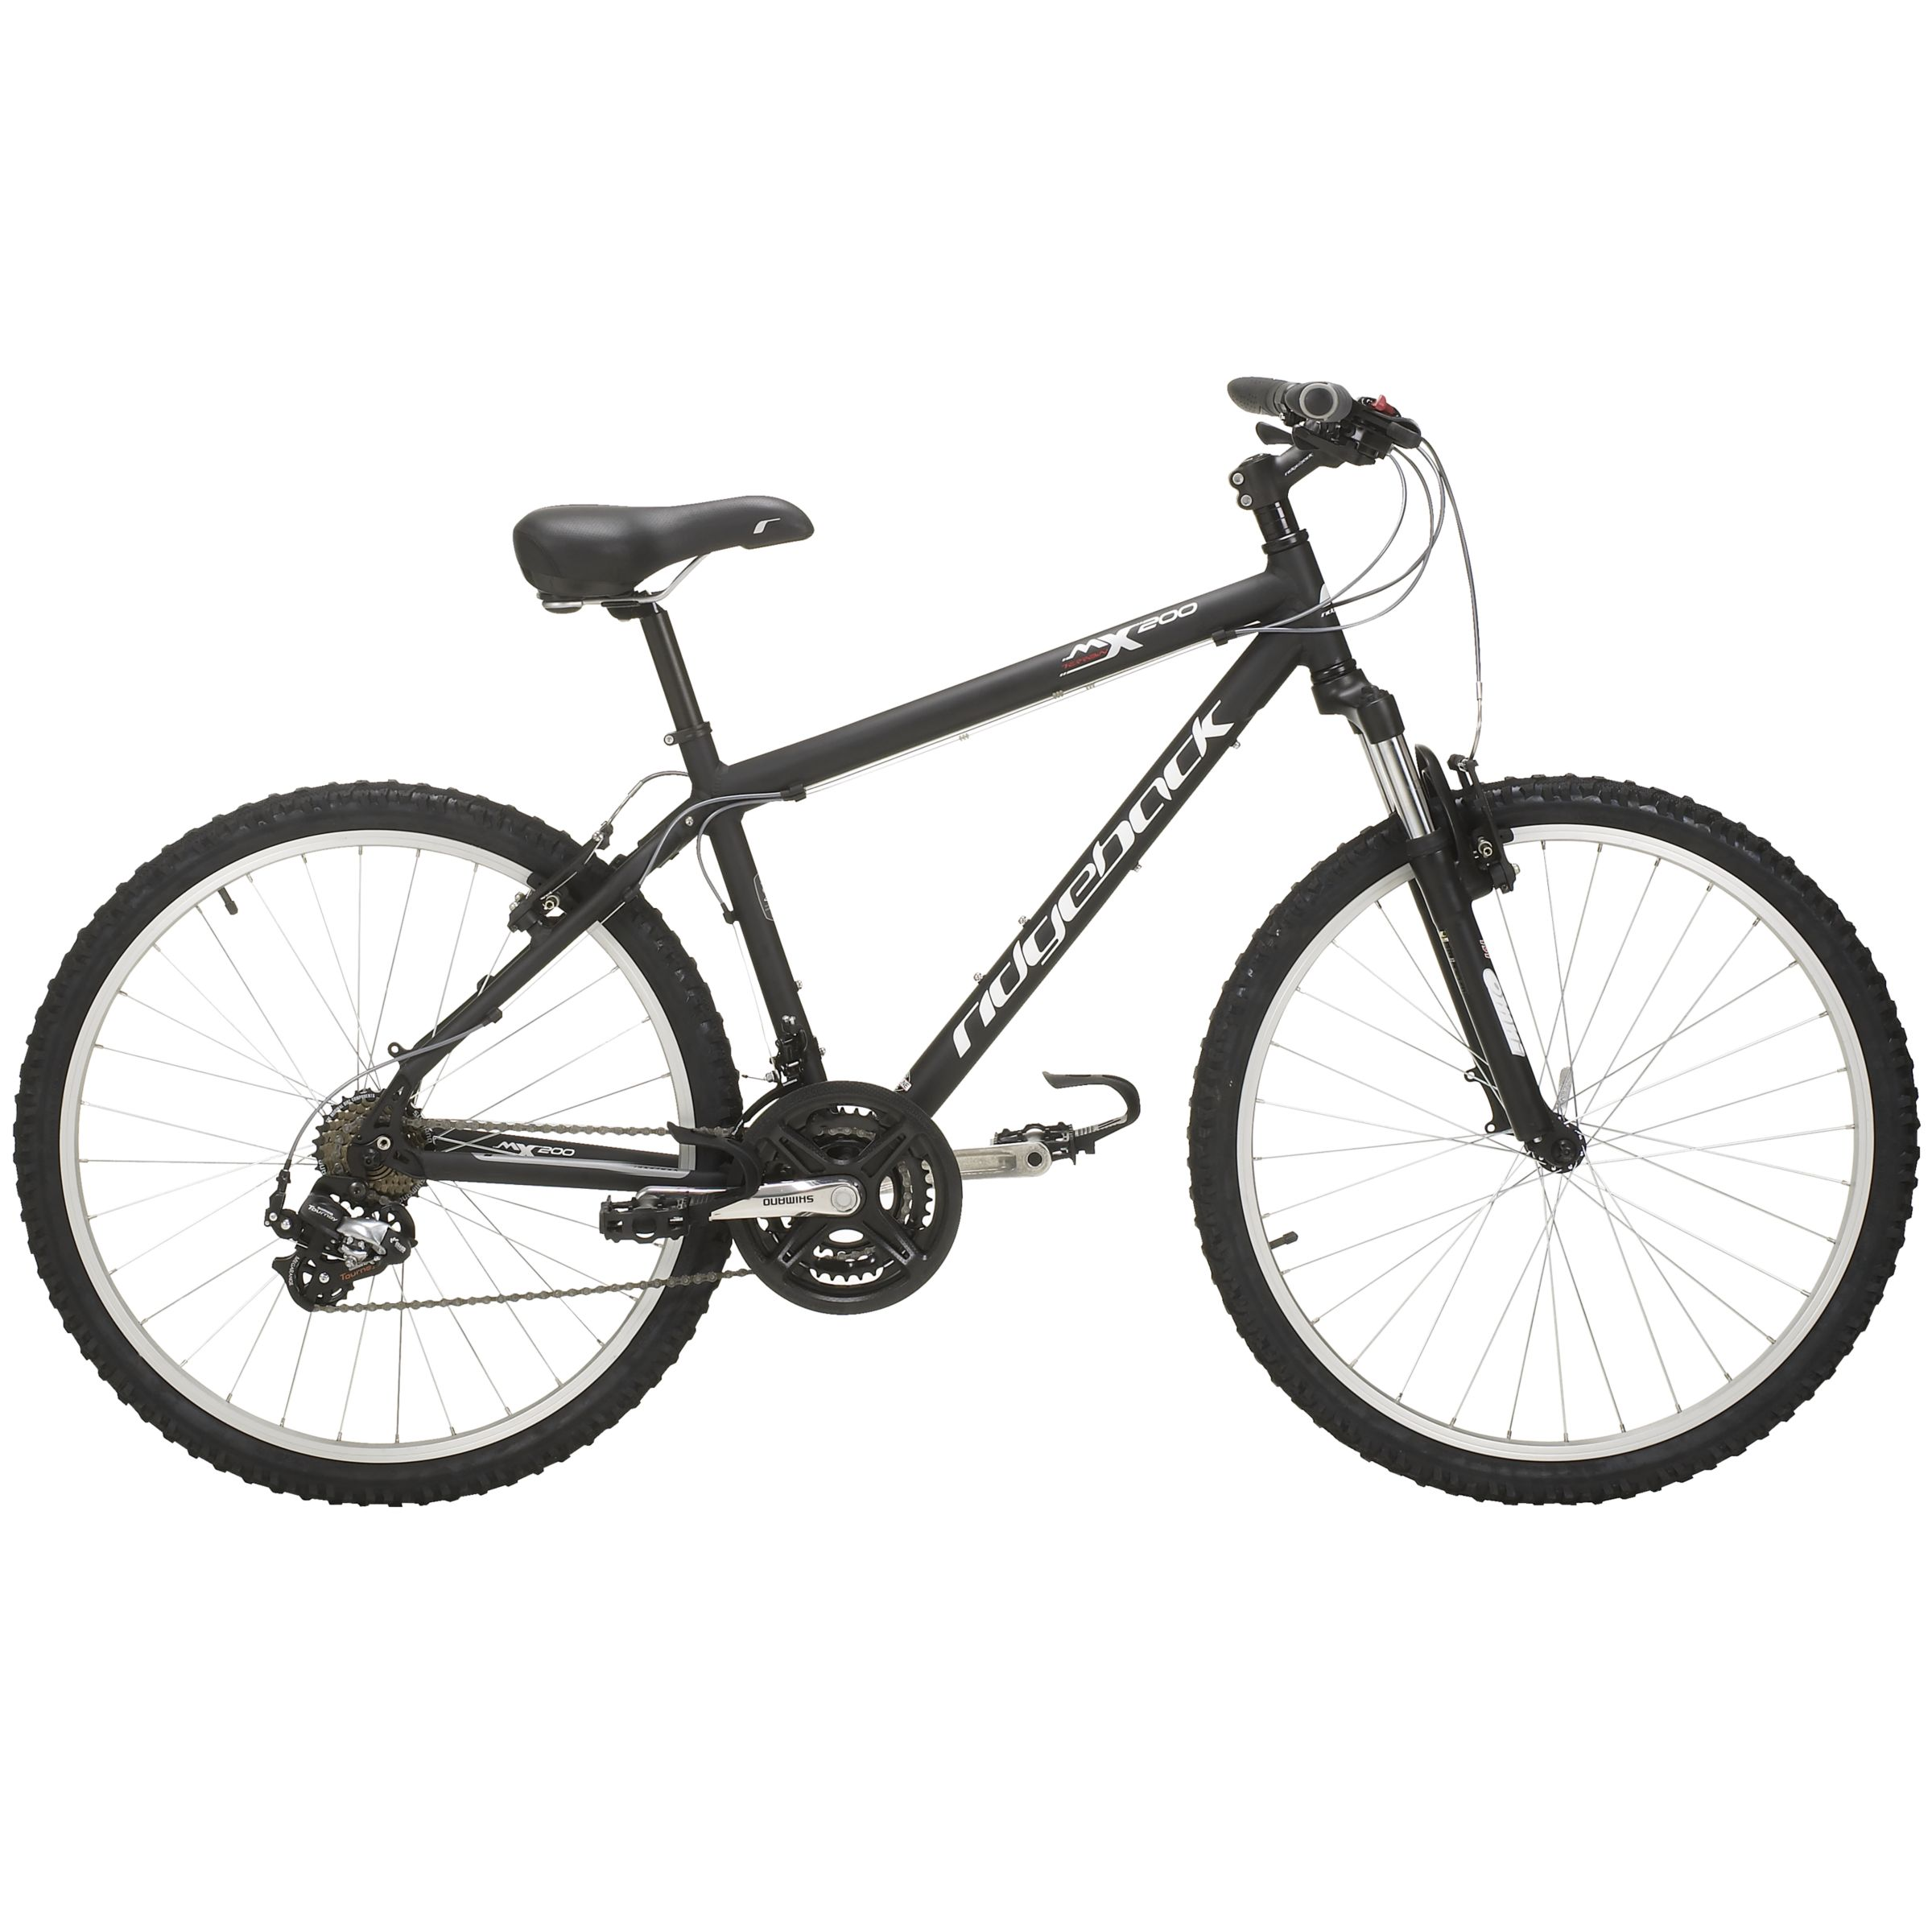 MX200 Mens Mountain Bike, Black